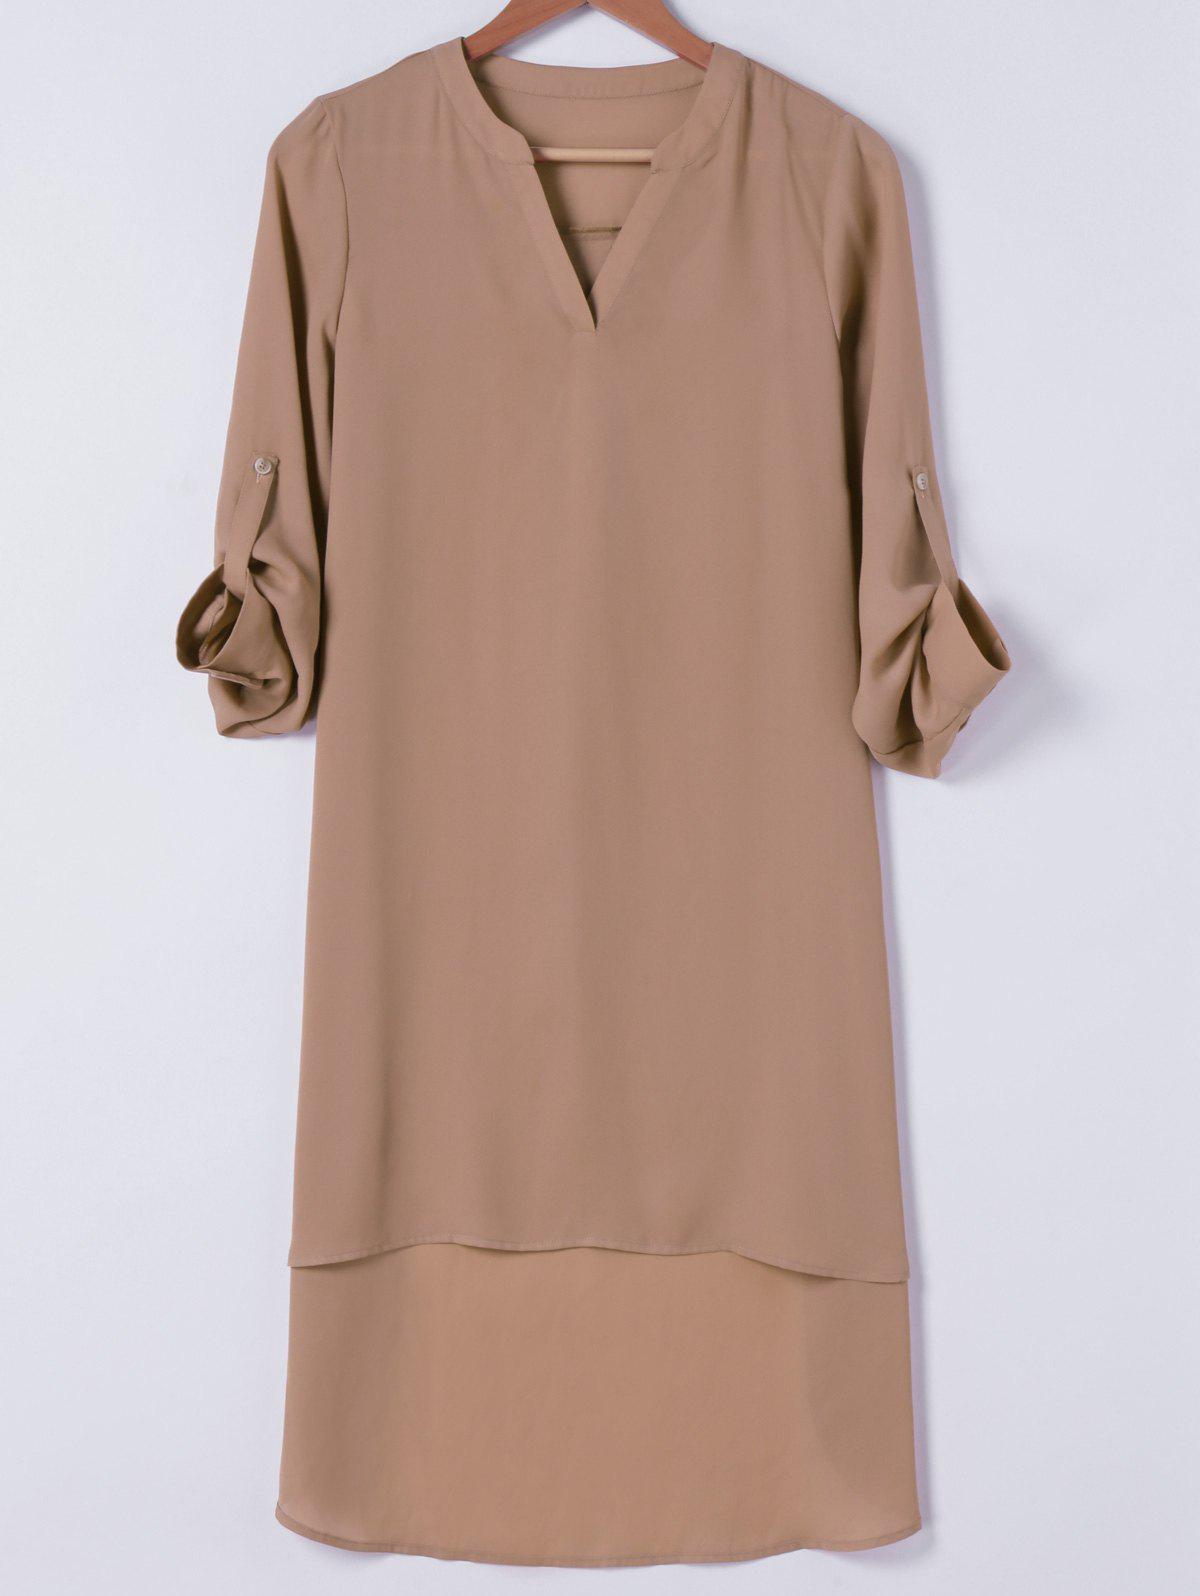 Casual Adjustable Sleeve Chiffon Shift Dress - CAMEL XL